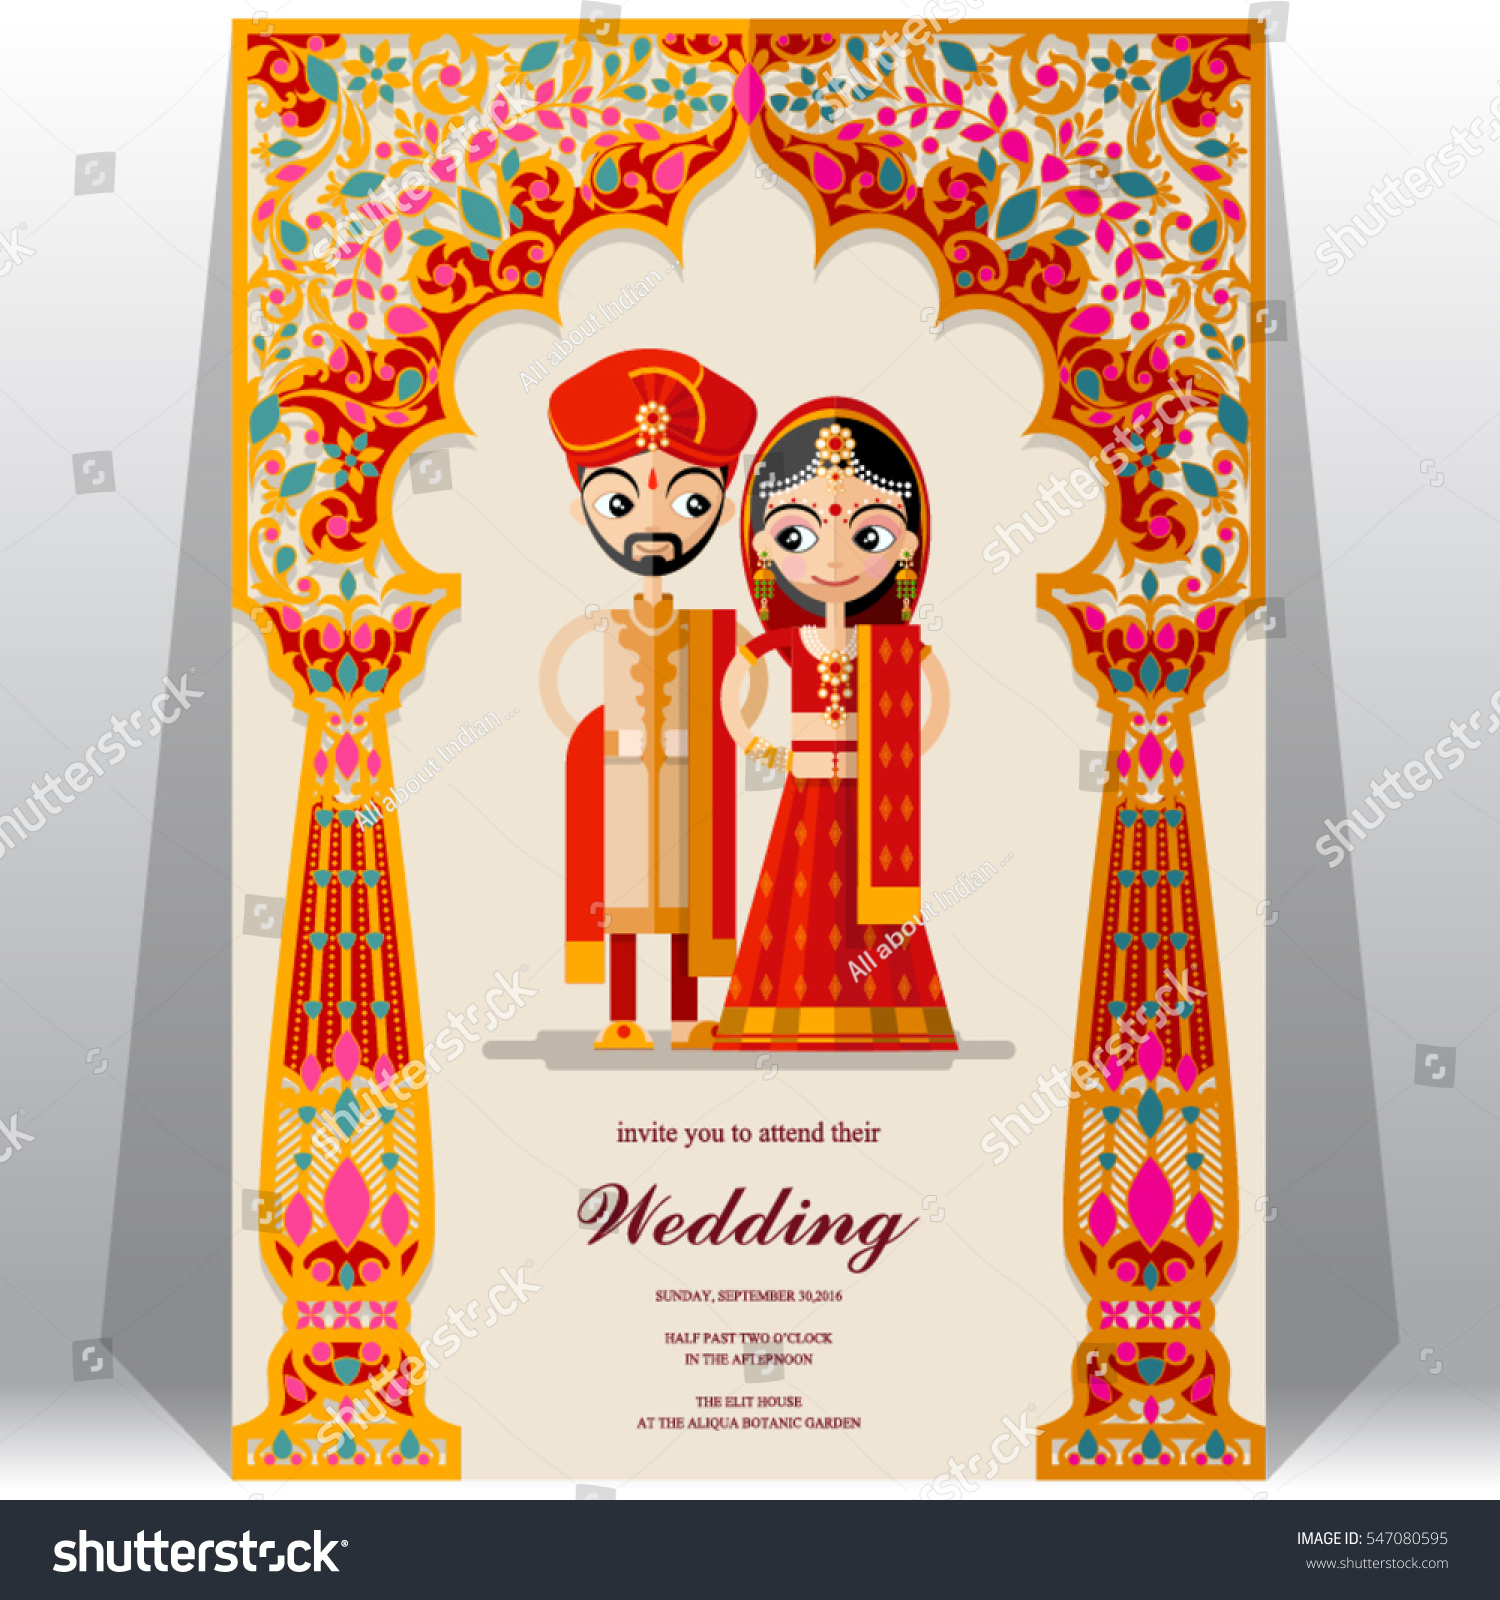 Similar Images, Stock Photos & Vectors of Indian Wedding Invitation ...